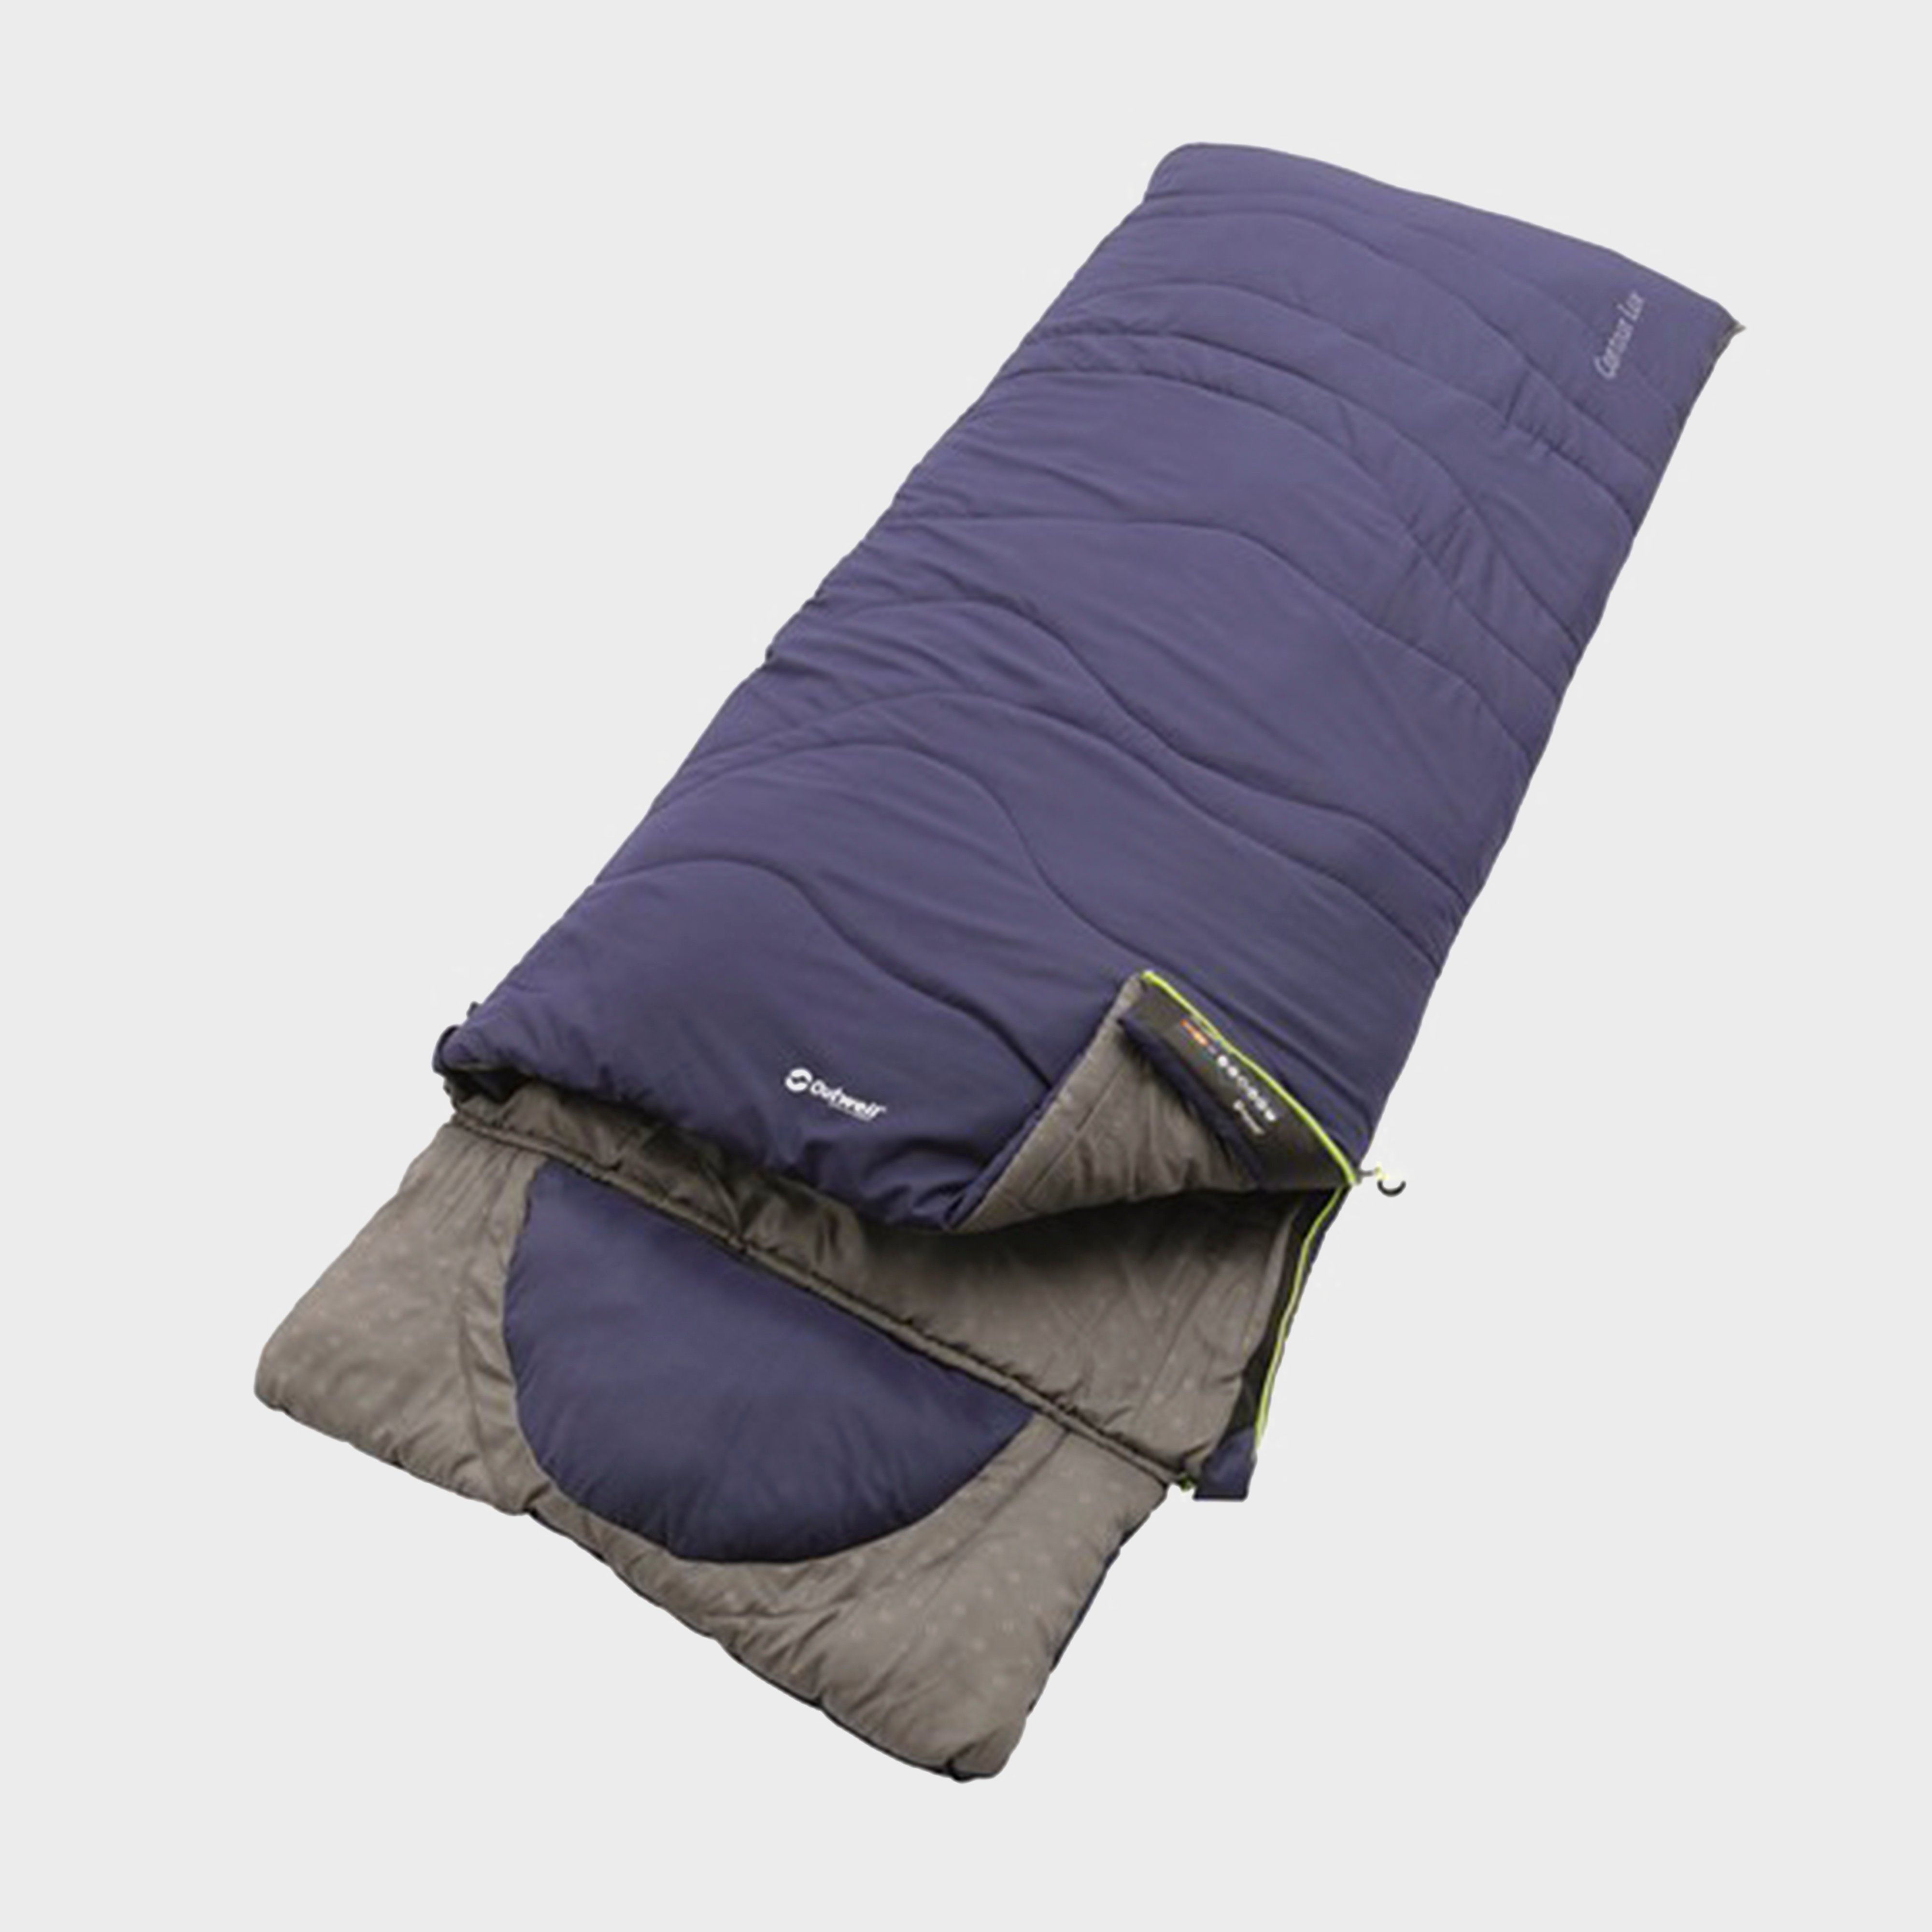 OUTWELL Contour Lux Sleeping Bag